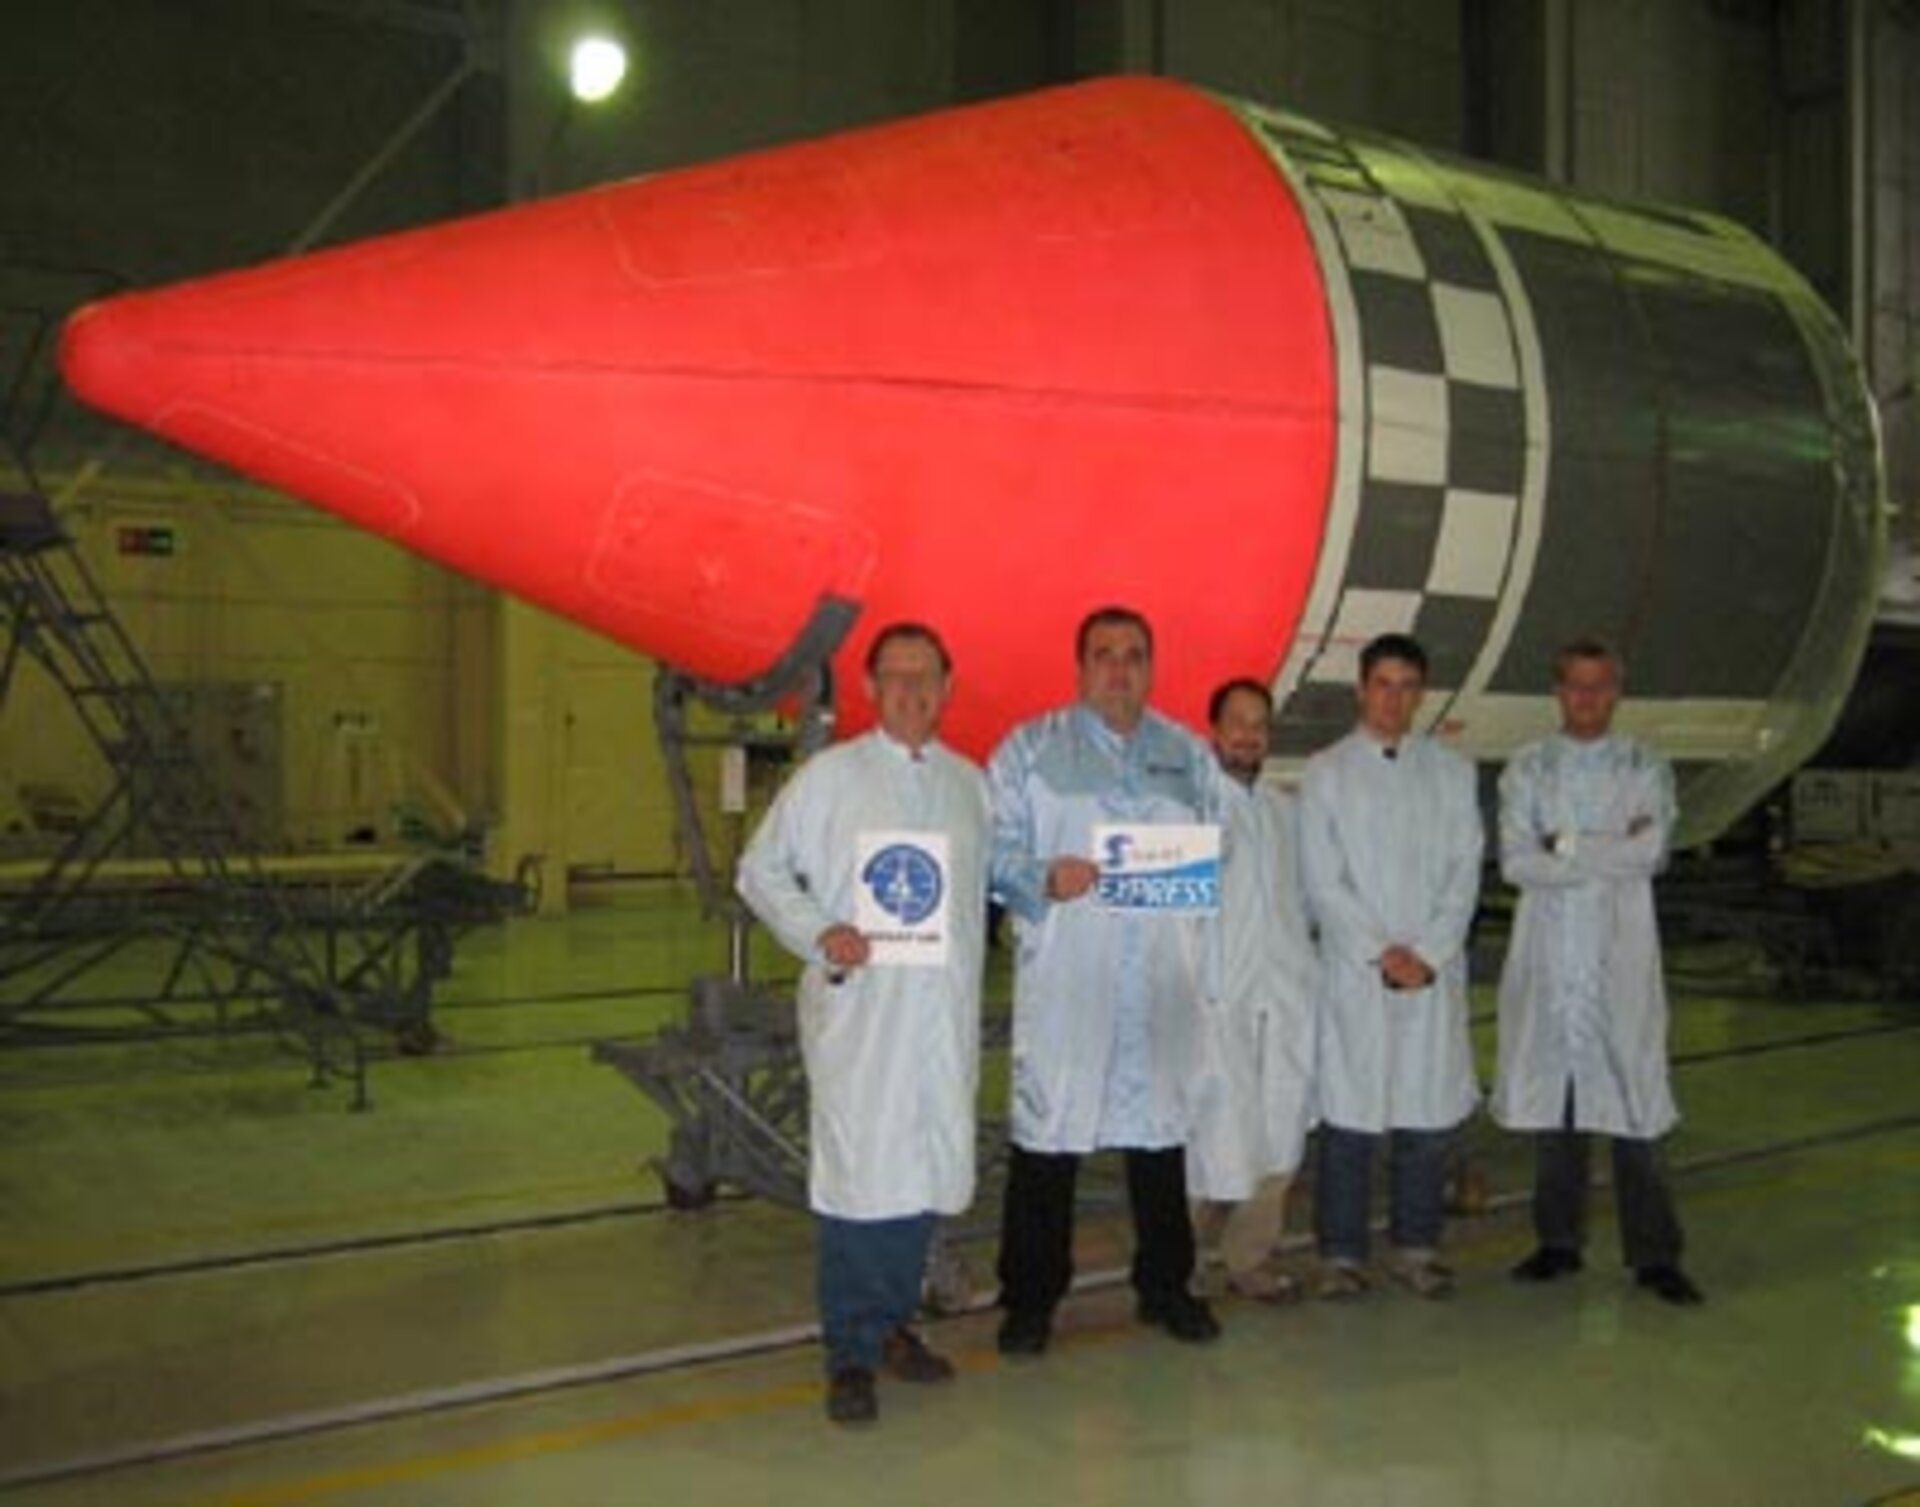 The launch team in front of the rocket